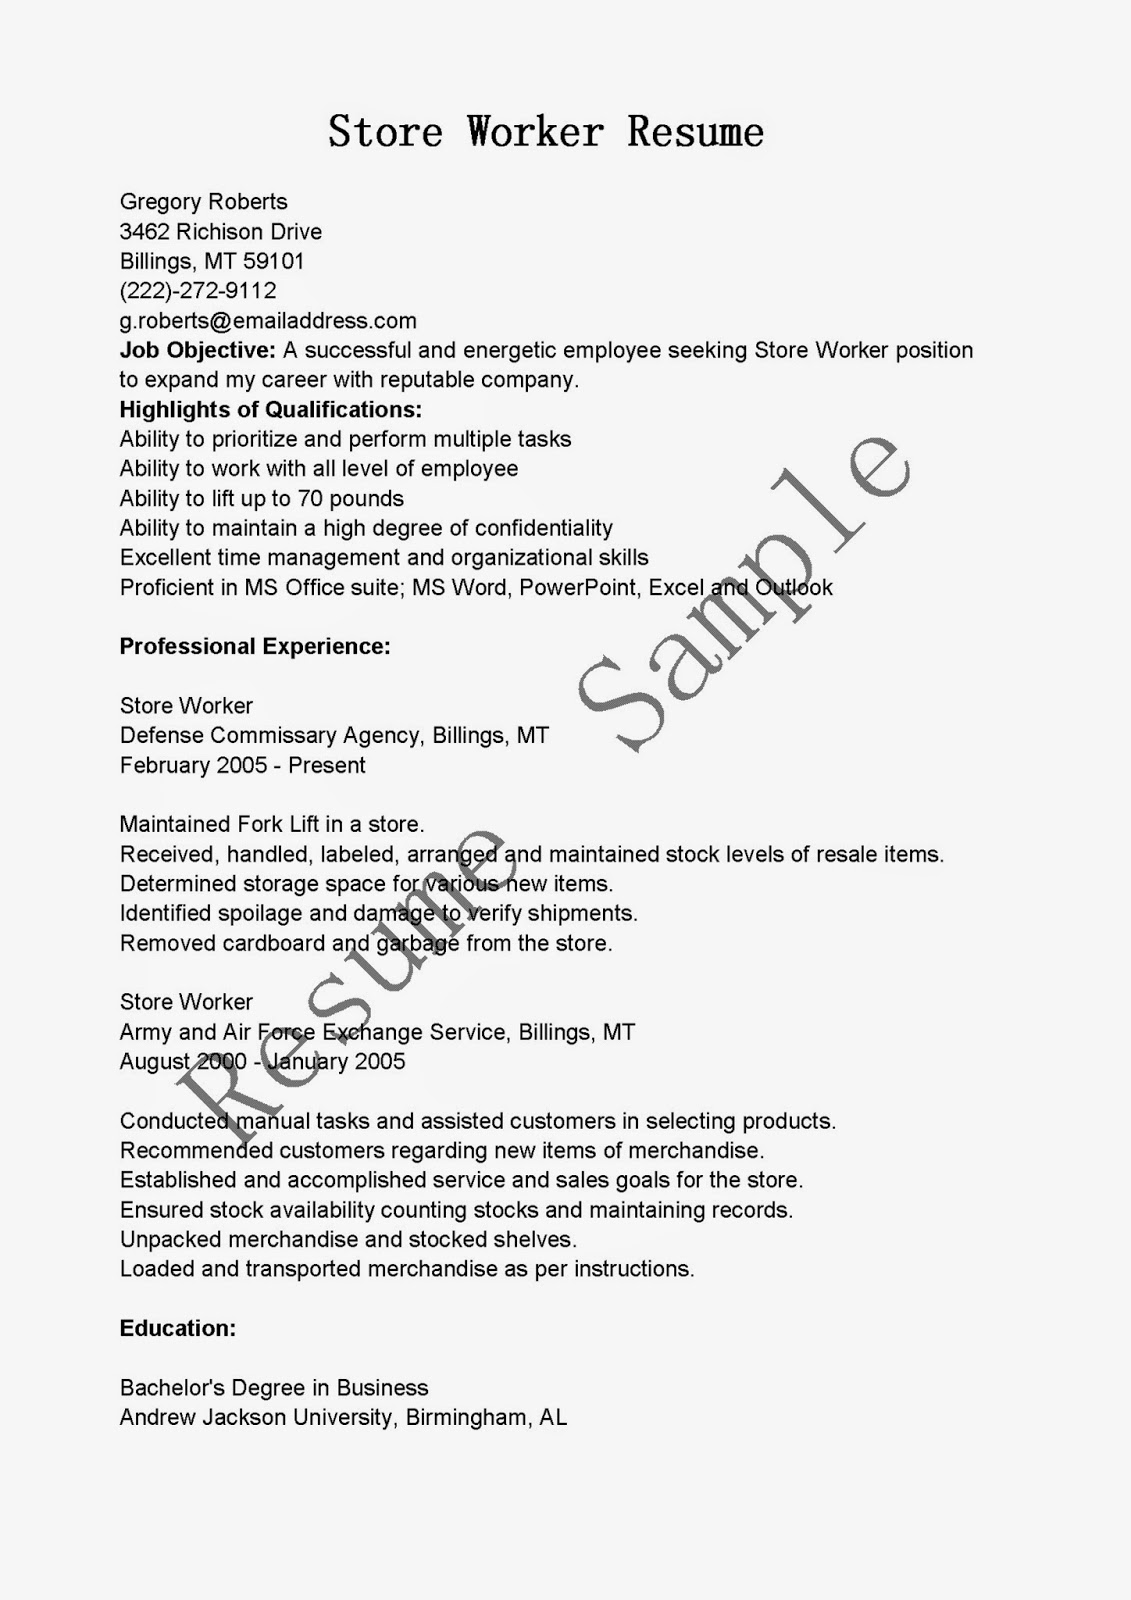 resume samples  store worker resume sample